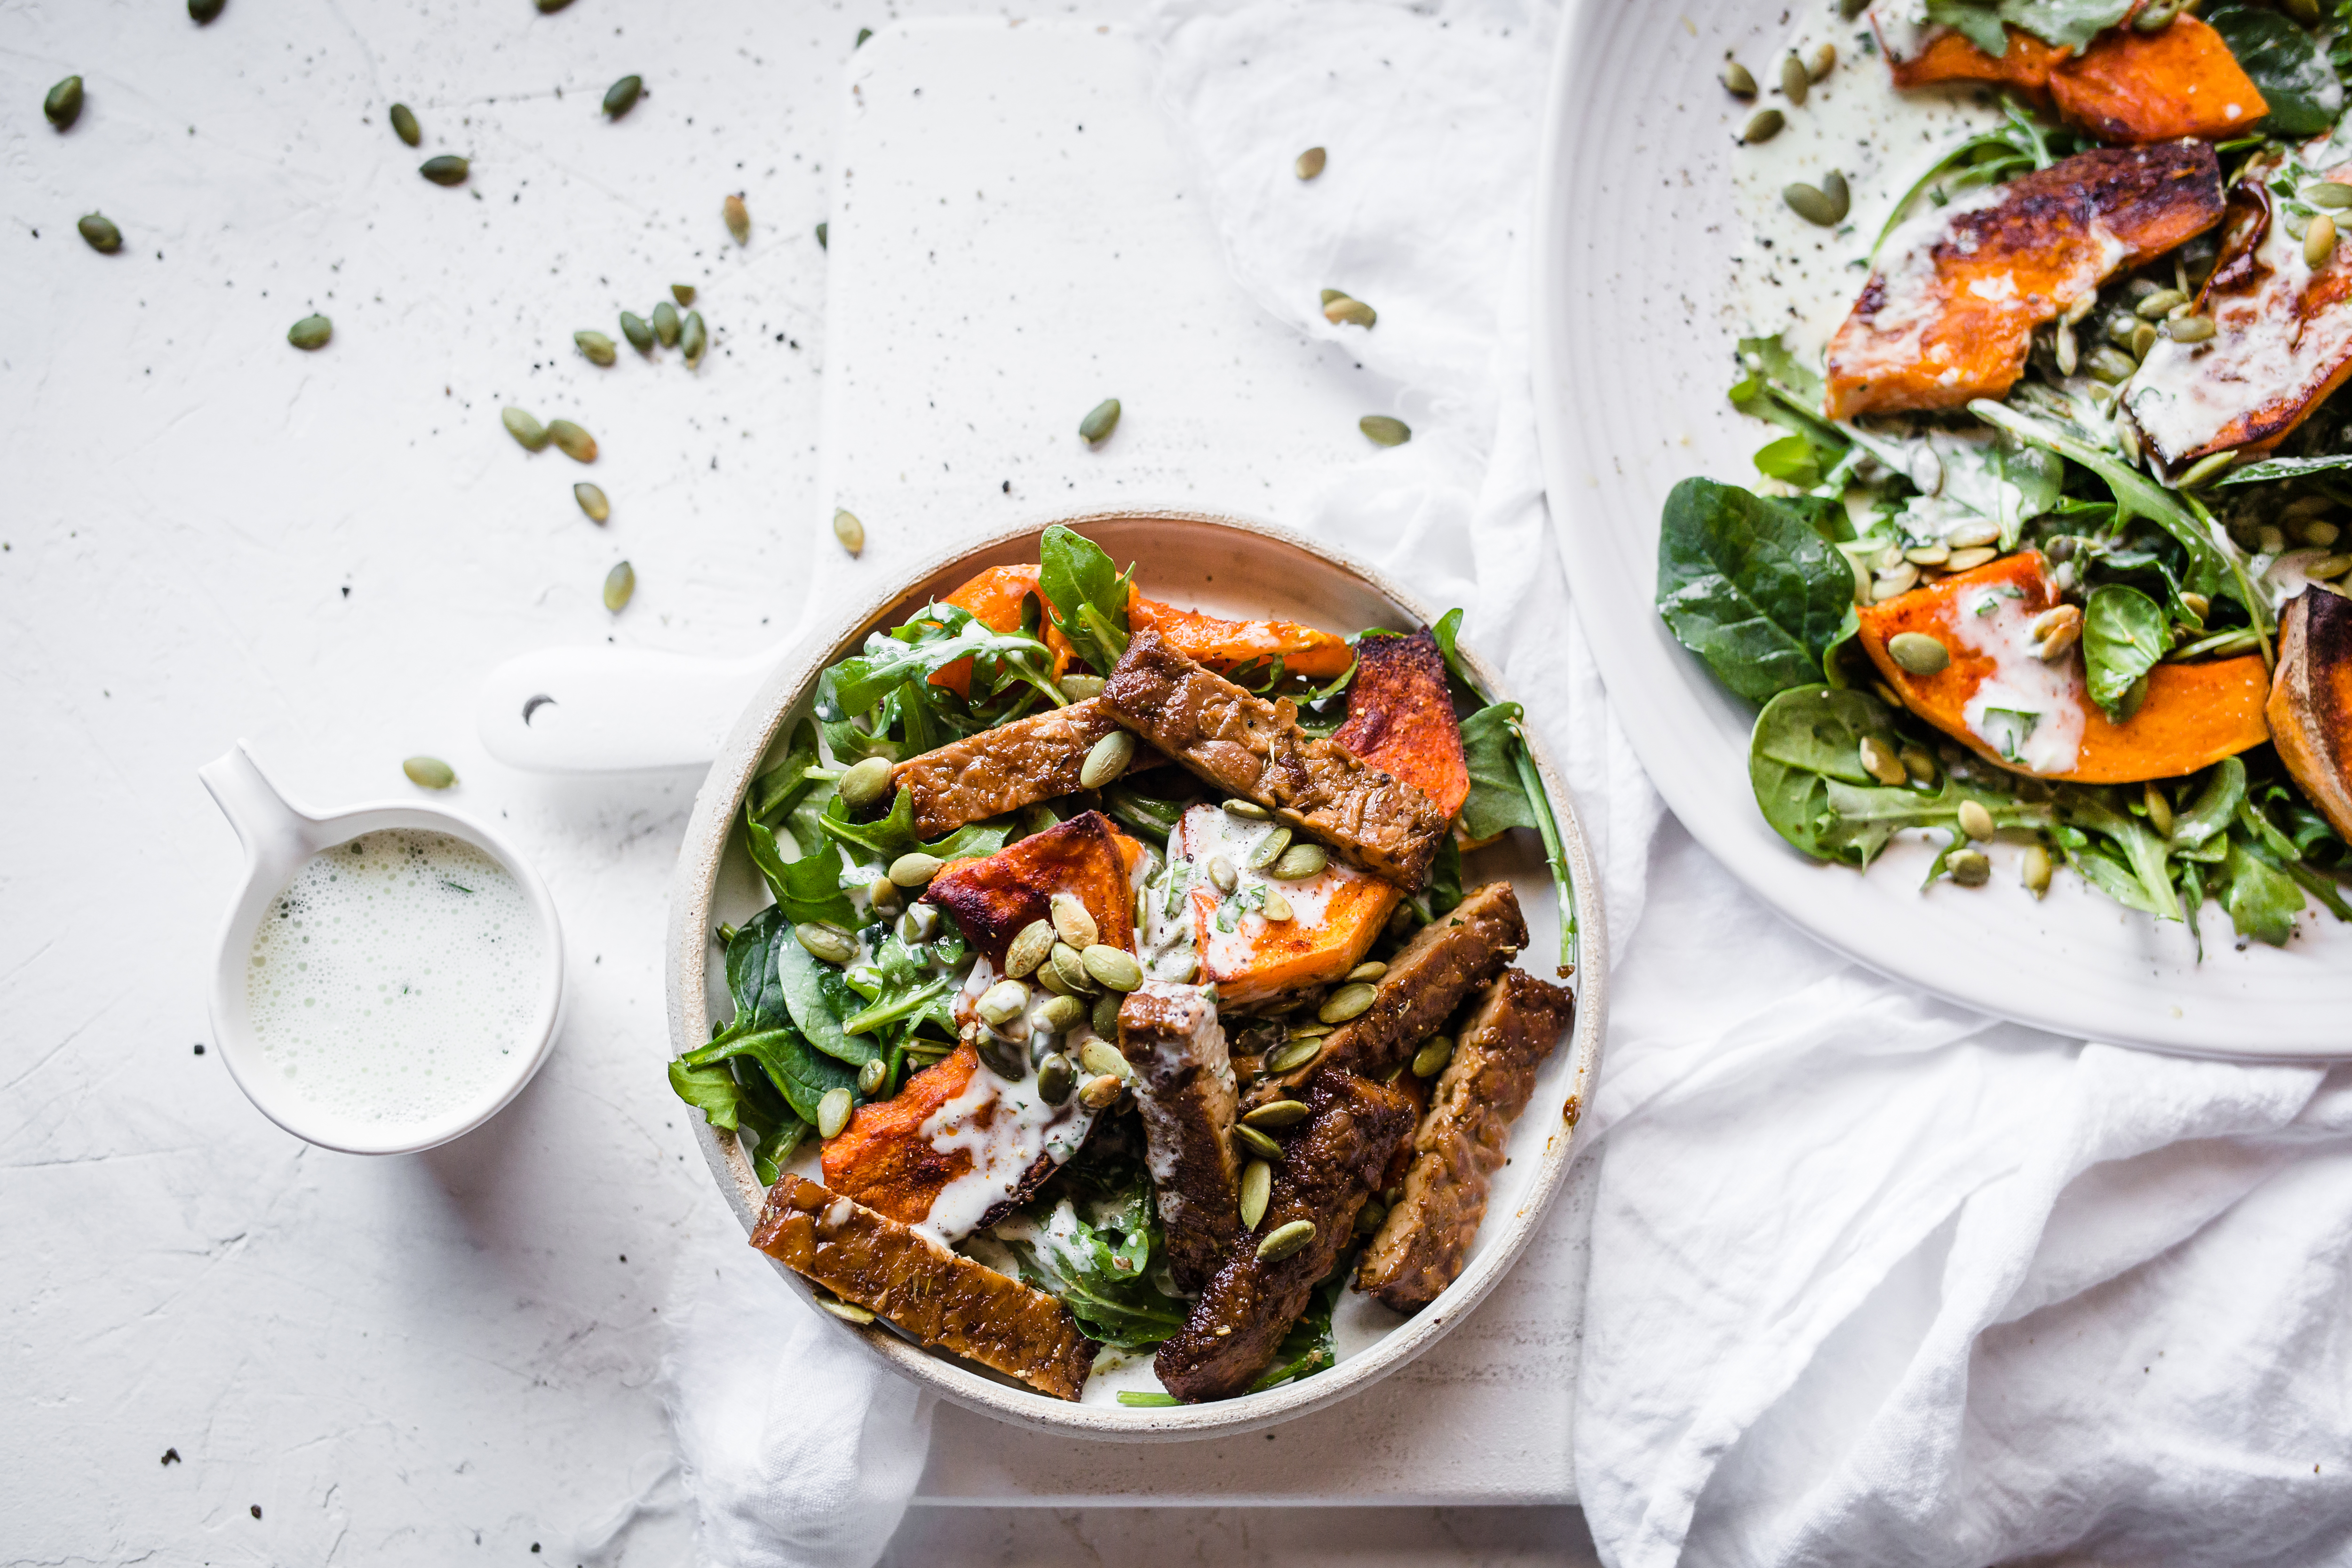 Really Fast Delicious Plant-Based Recipes Ready in 10 Minutes or Less Real Food